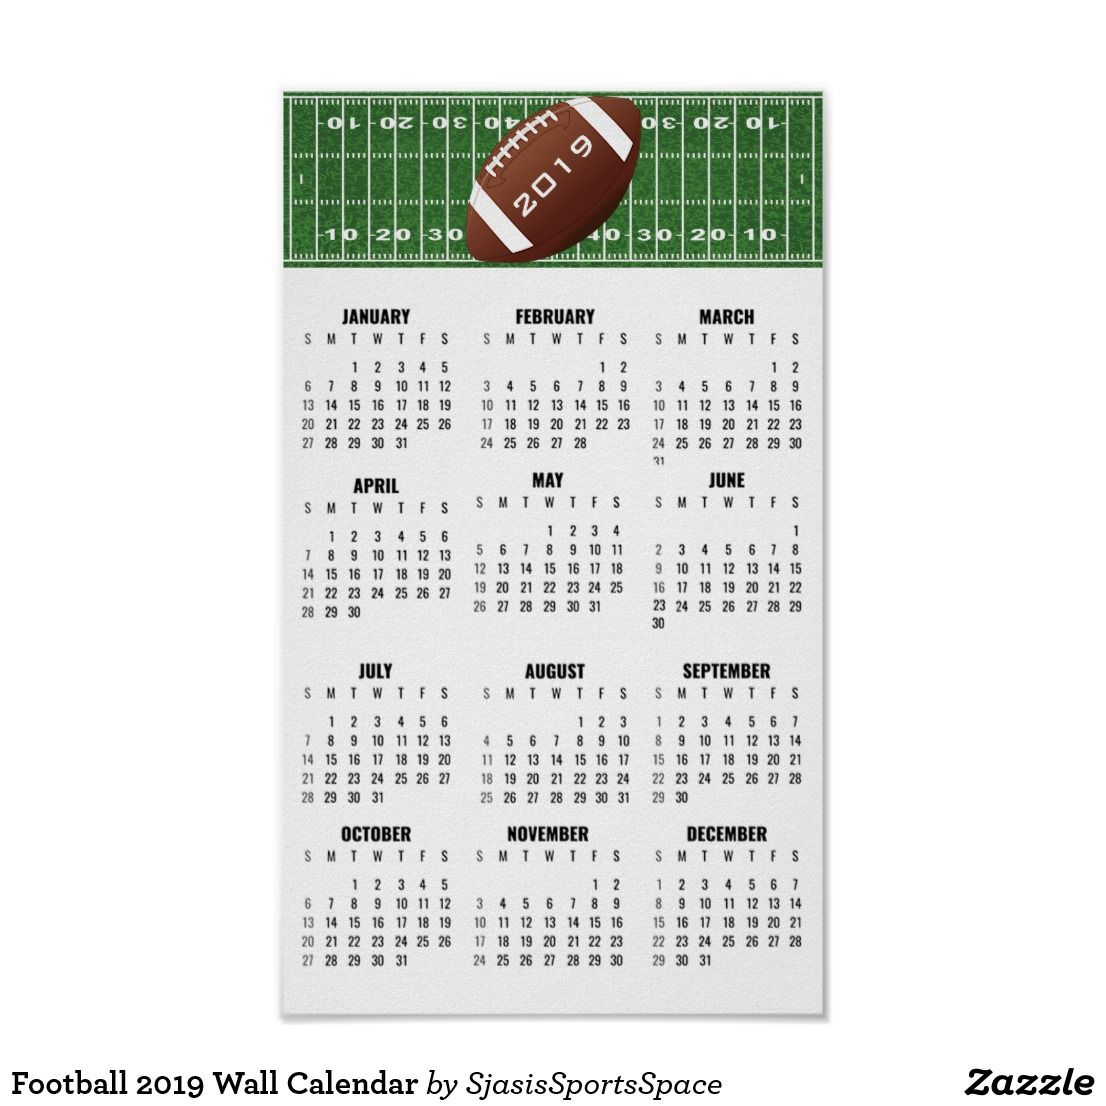 Football Calendar 2019 Football 2019 Wall Calendar Poster | Zazzle.| 2019 Calendars